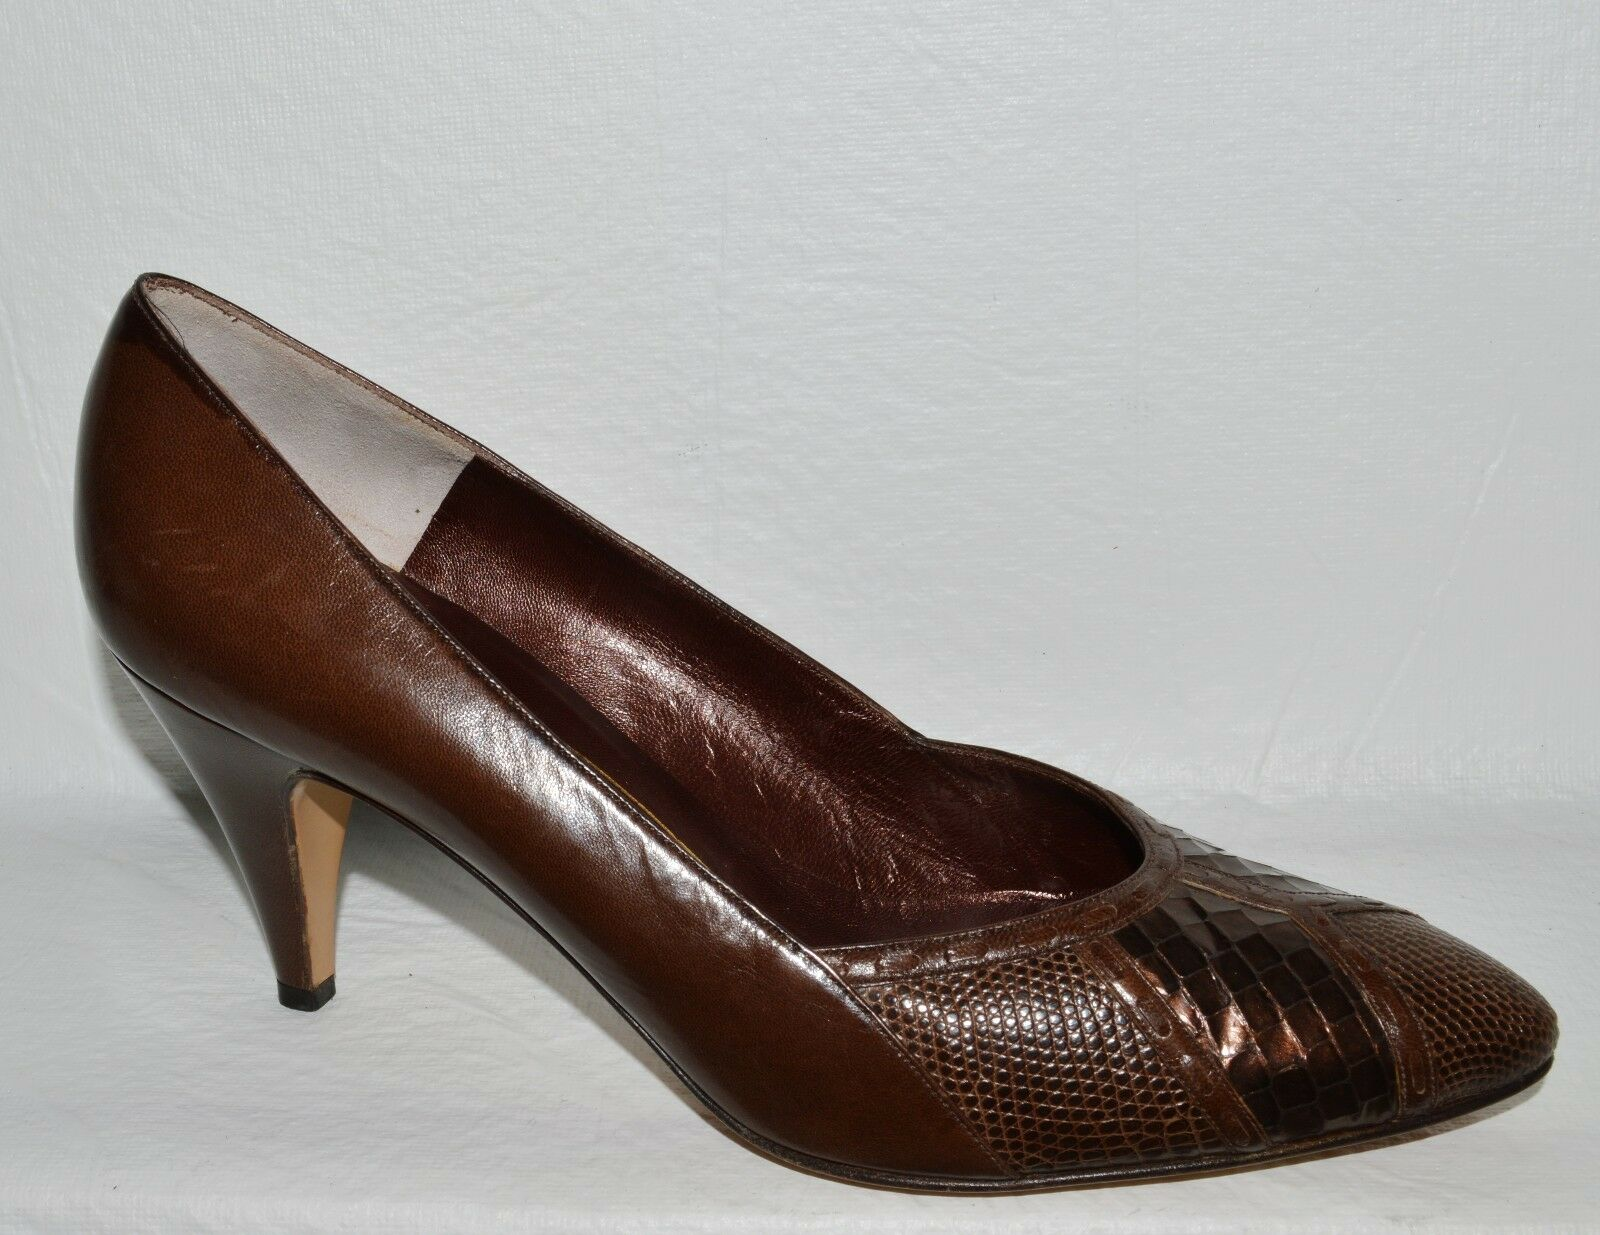 BRUNO MAGLI SZ 8 AA NARROW BROWN LEATHER PUMPS HEELS DRESS SHOES ITALY